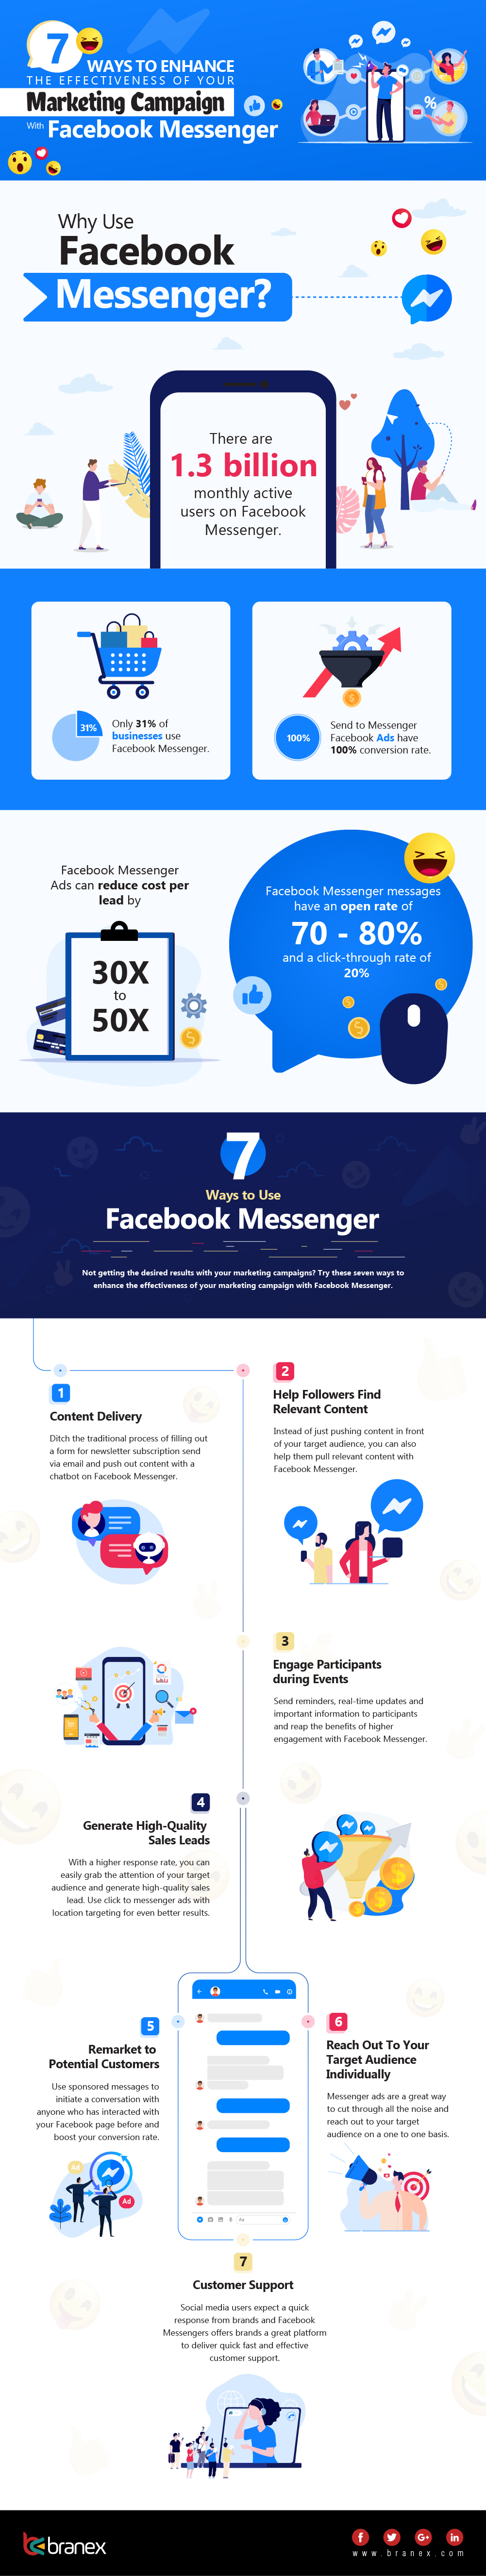 Facebook Messenger marketing tips